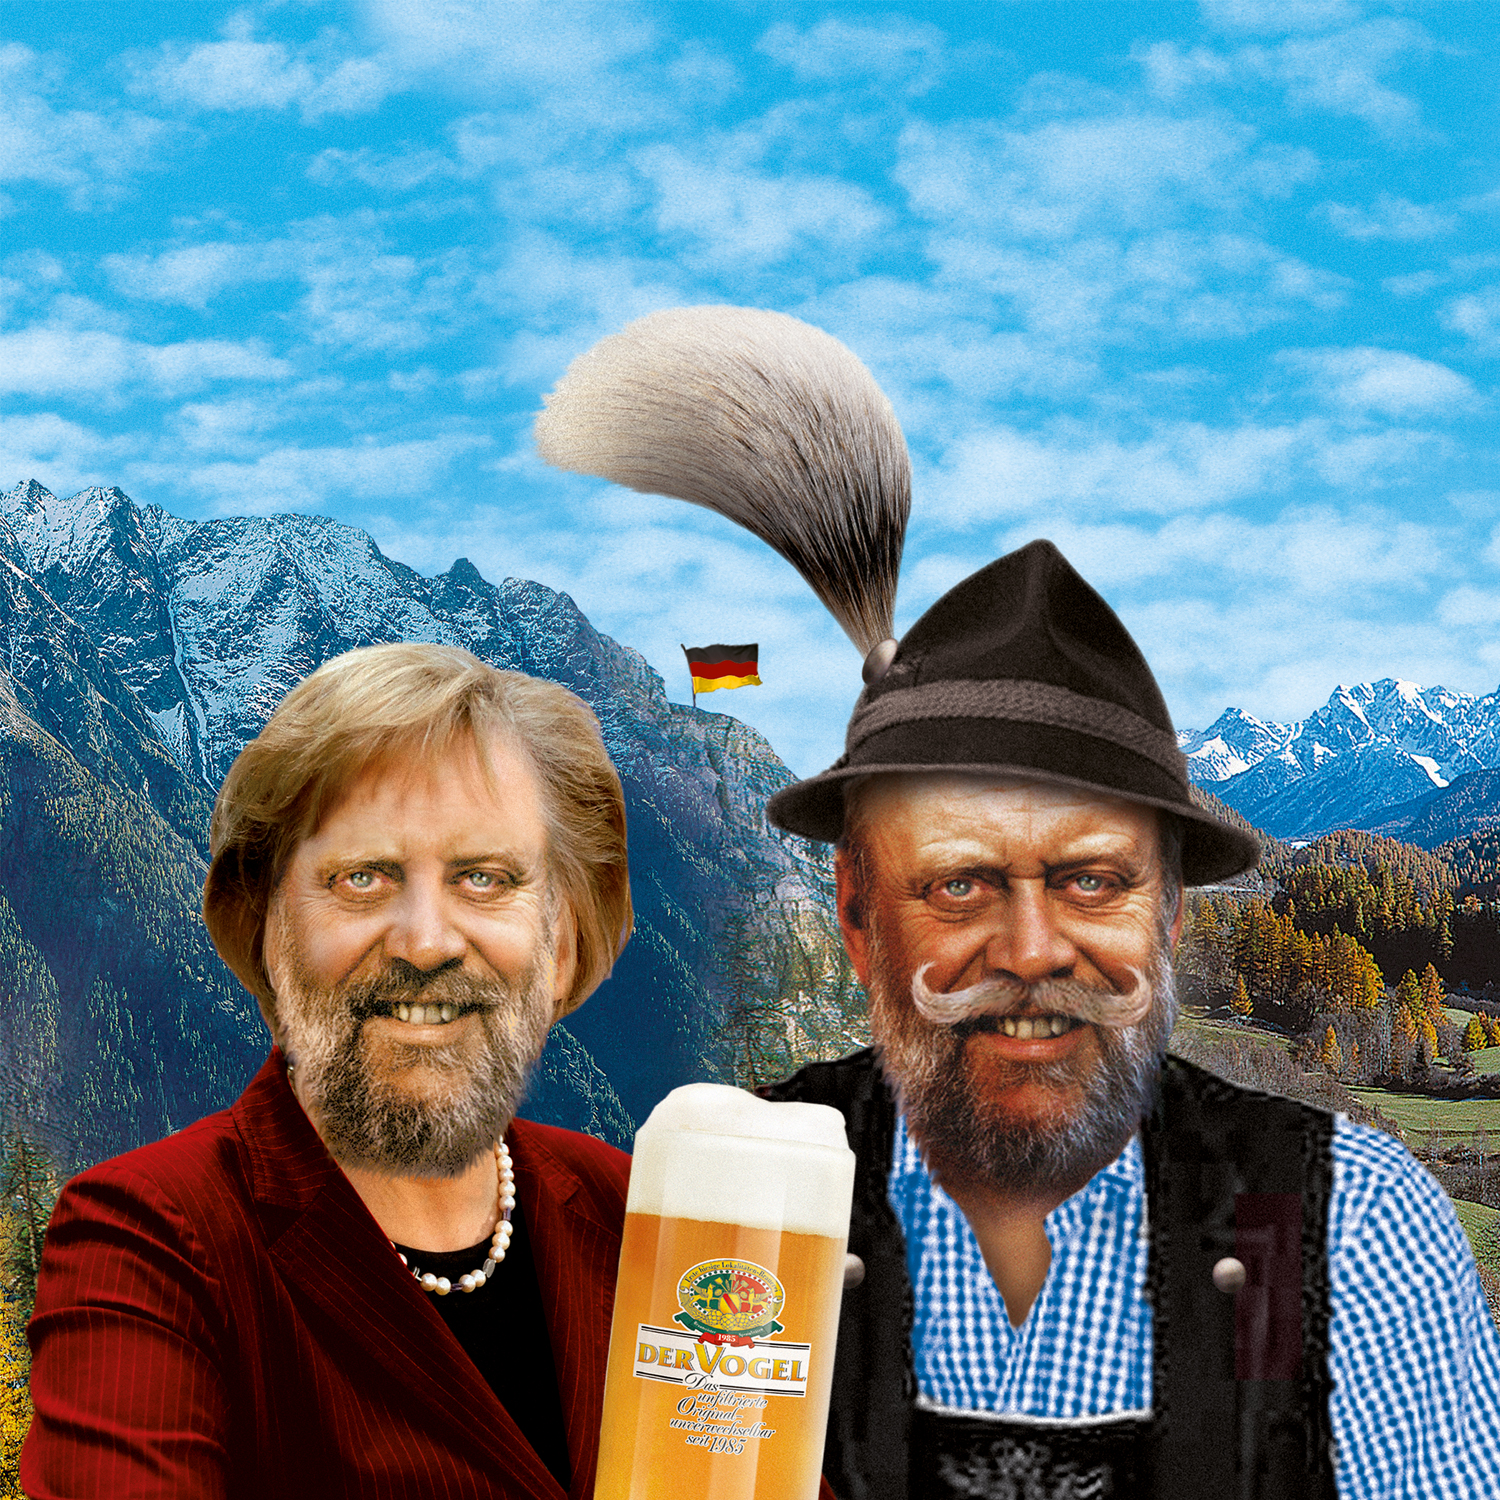 Vogelbräu Key-Visual Angela